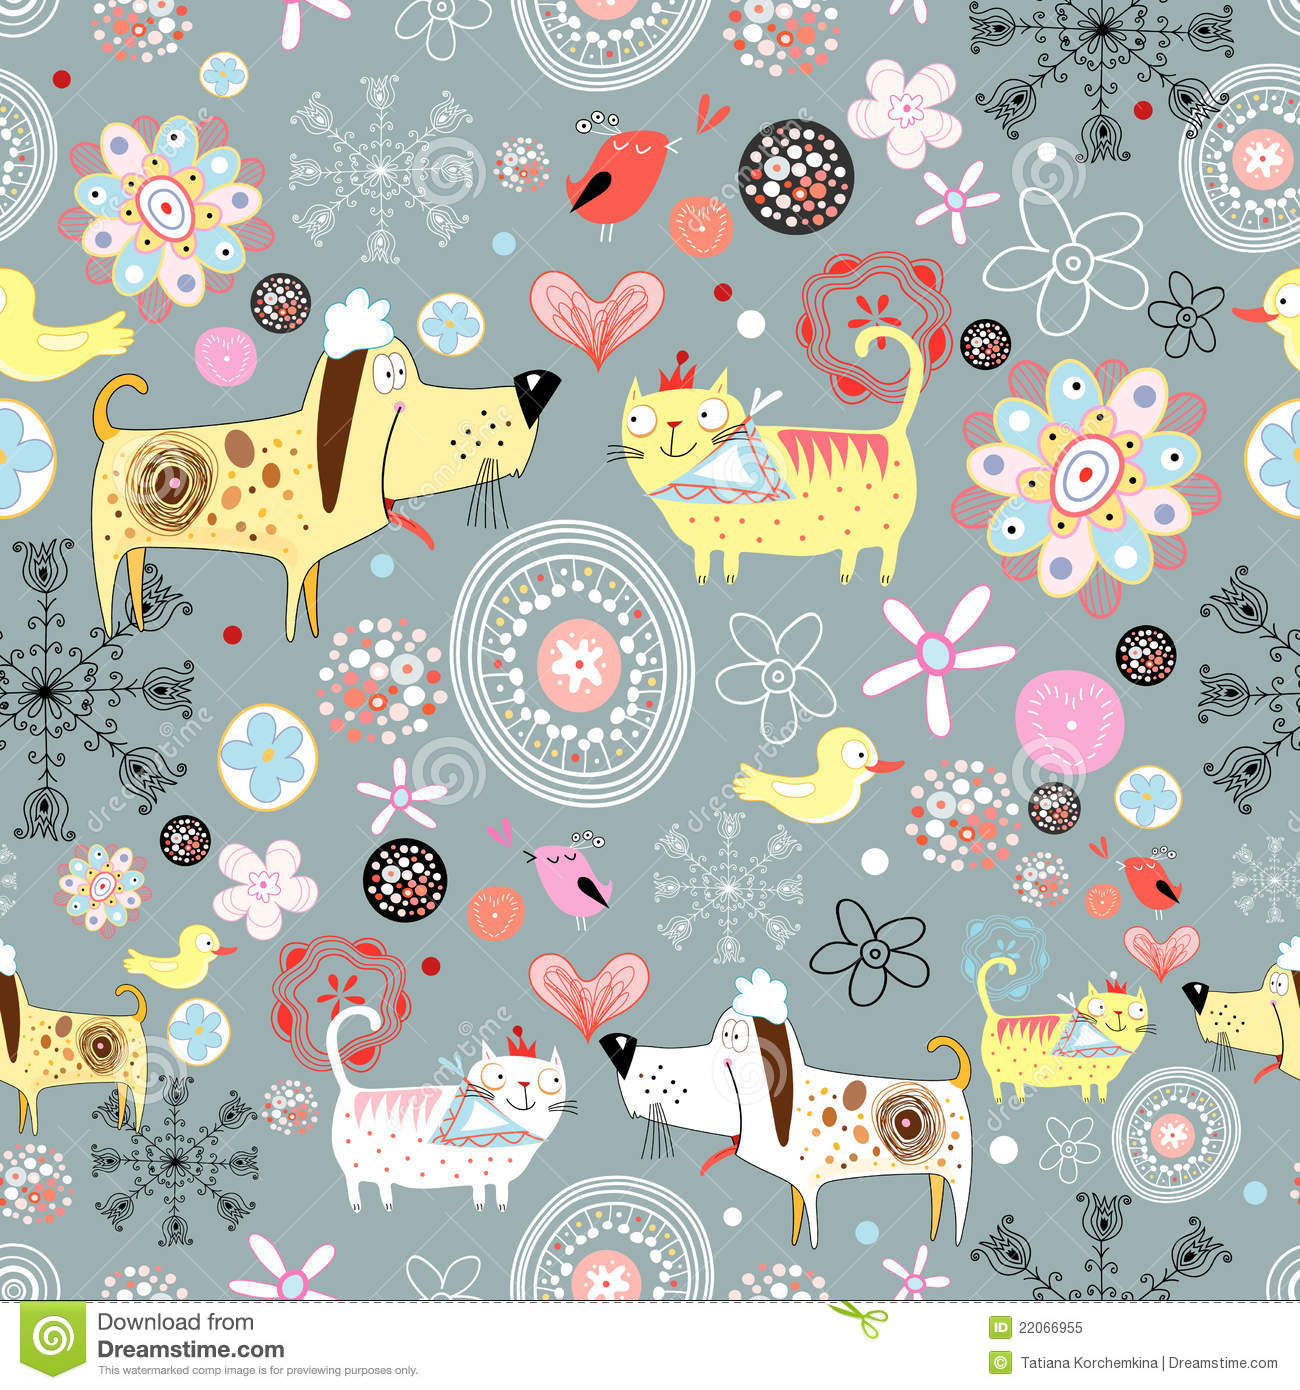 Texture of the dogs and cats